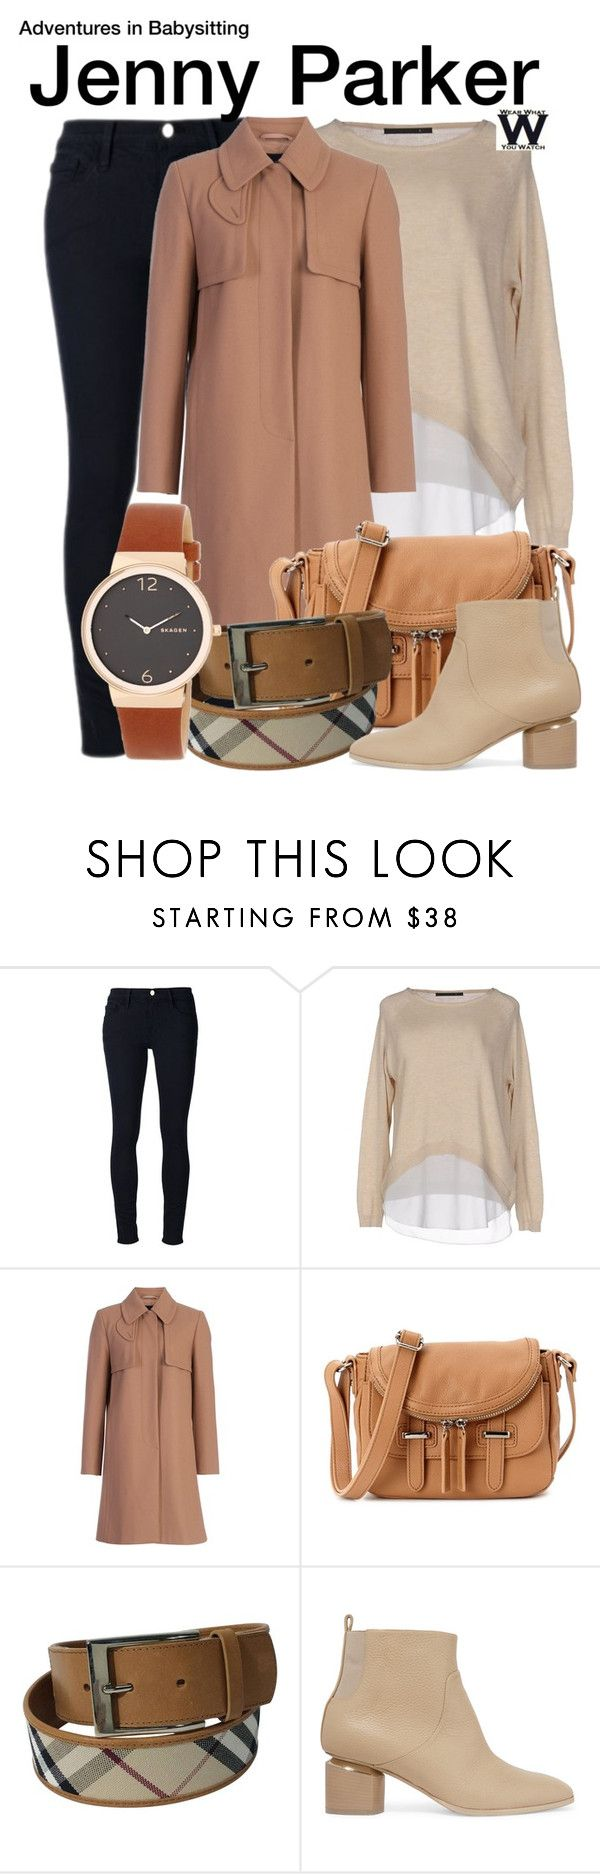 """Adventures in Babysitting (2016)"" by wearwhatyouwatch ❤ liked on Polyvore featuring Frame, ONLY, French Connection, Charles Jourdan, Burberry, Nicholas Kirkwood, Skagen, television and wearwhatyouwatch"